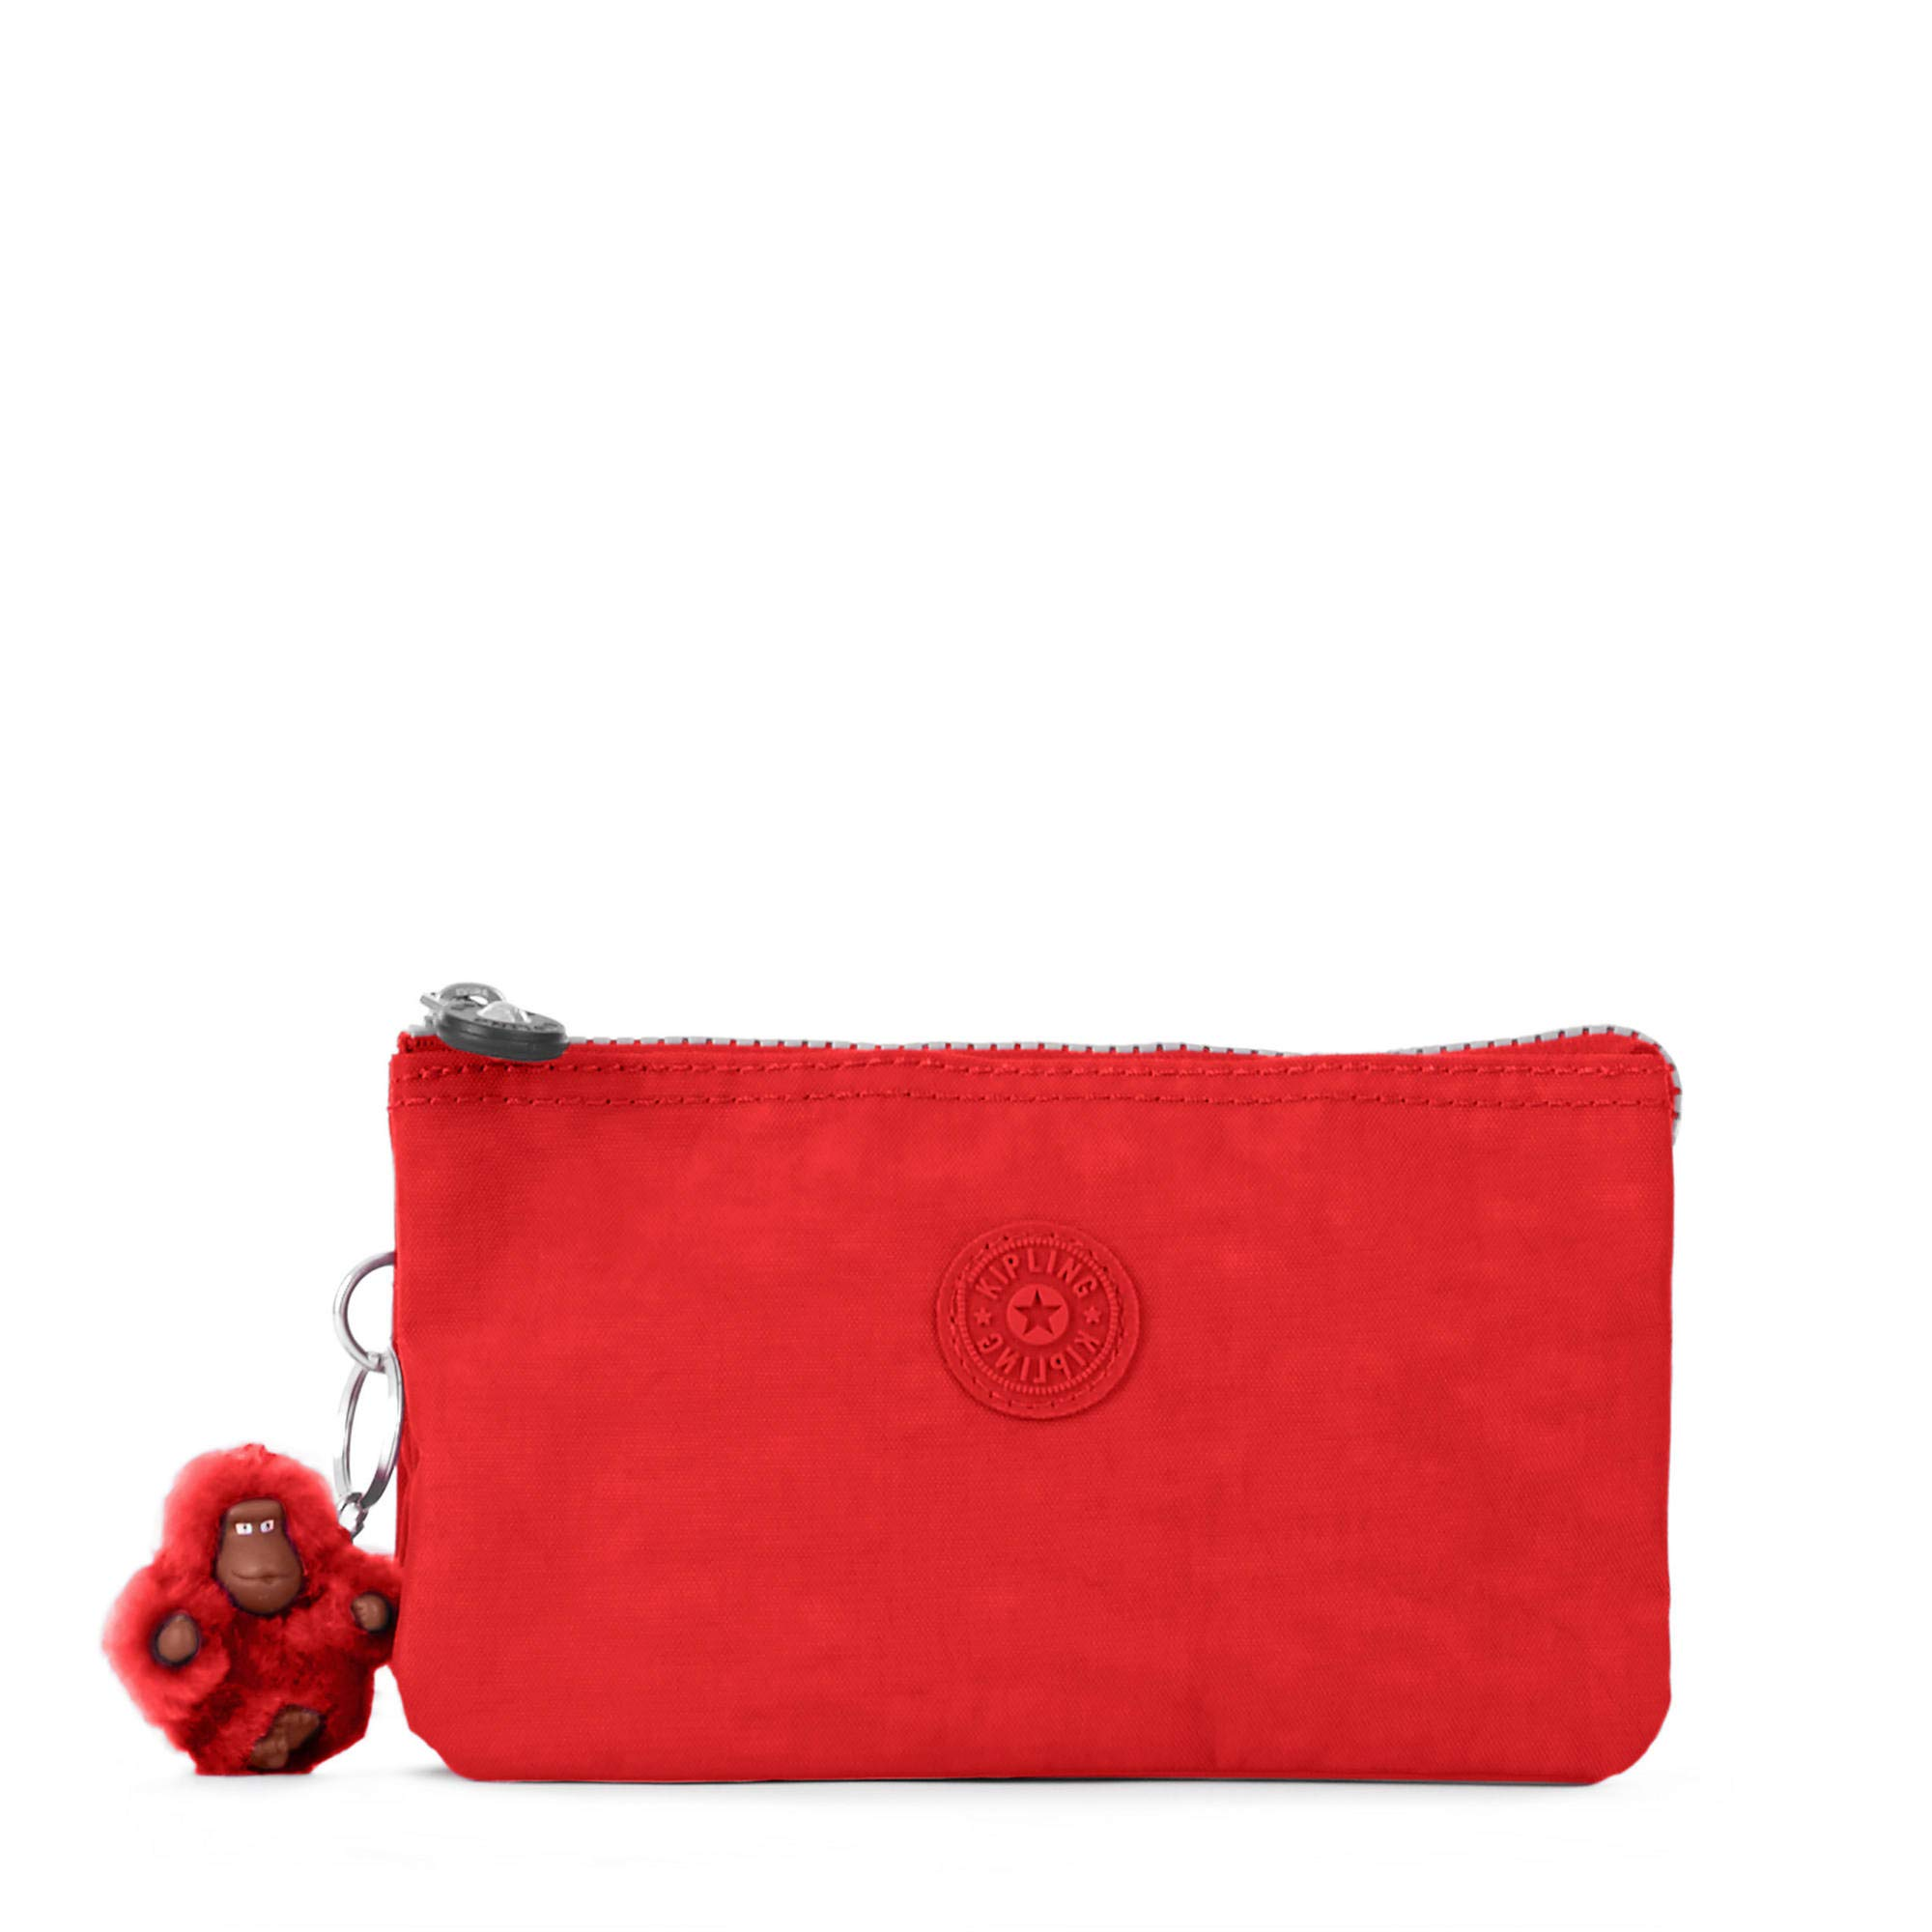 Kipling Creativity Large Pouch One Size Cherry T